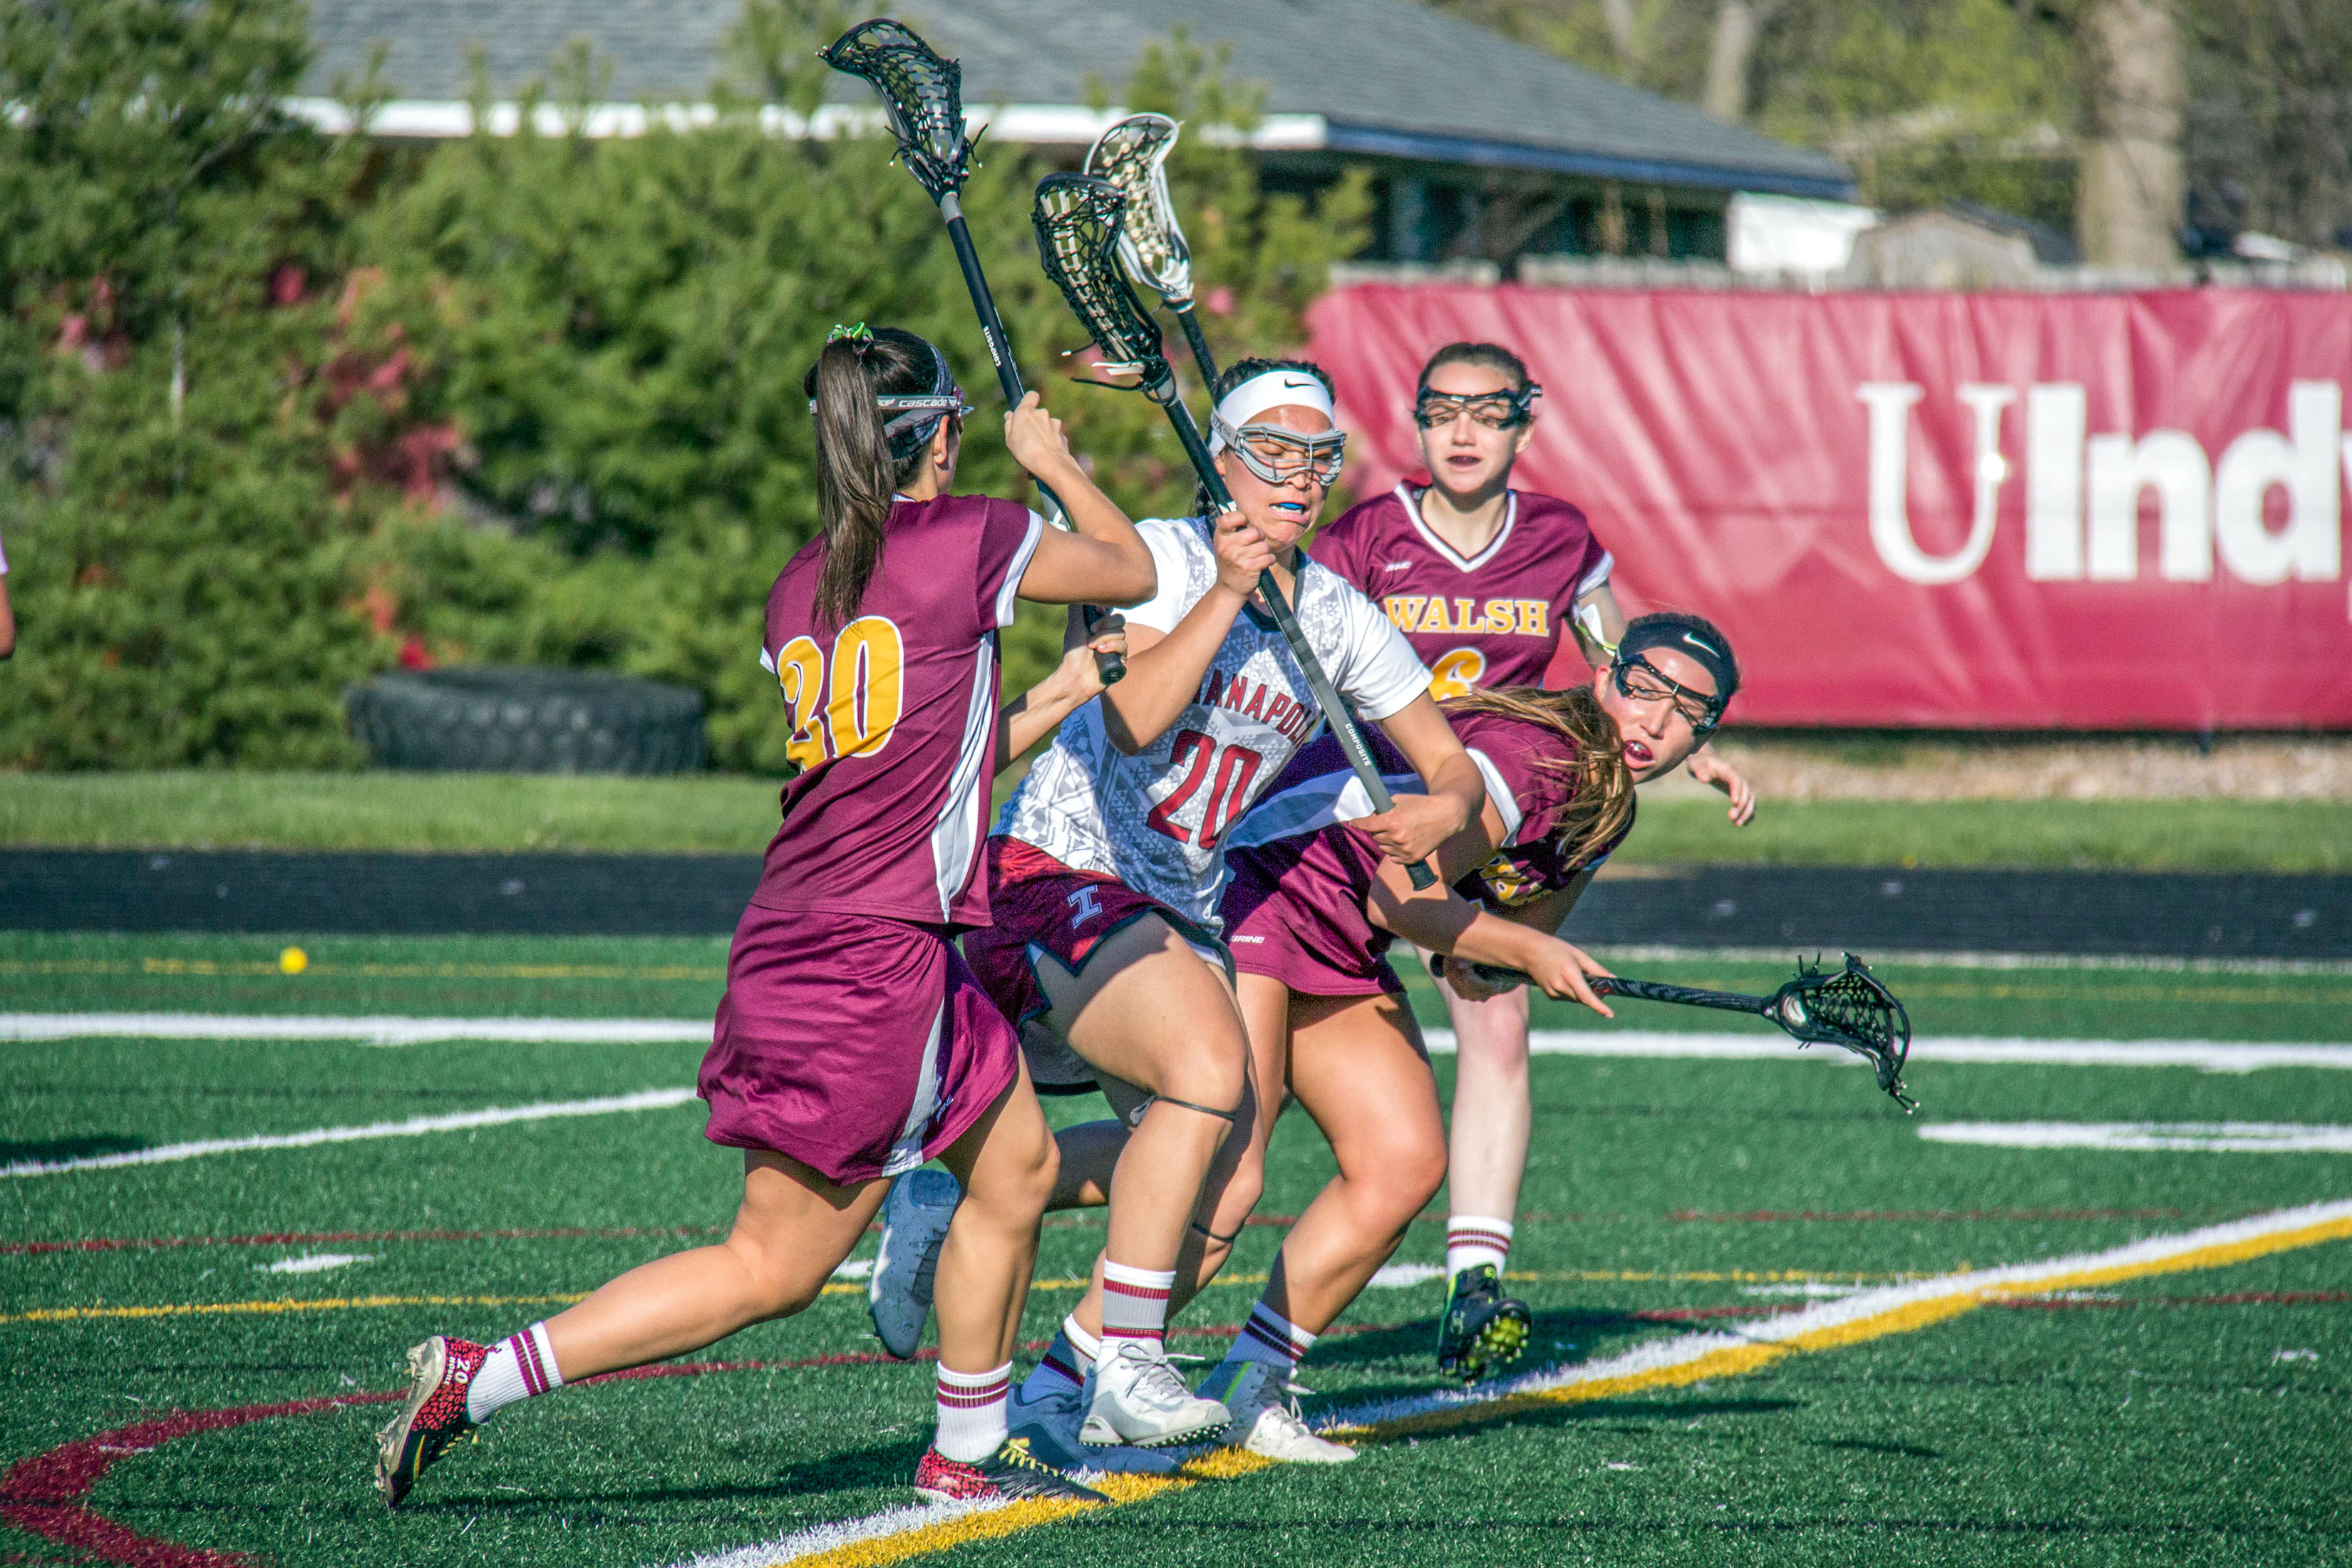 Junior midfield Erika Mackenzie had two goals in the Greyhounds matchup against Walsh University on April 15. The Greyhounds beat the Cavaliers 19-10. Photo by Cassie Reverman